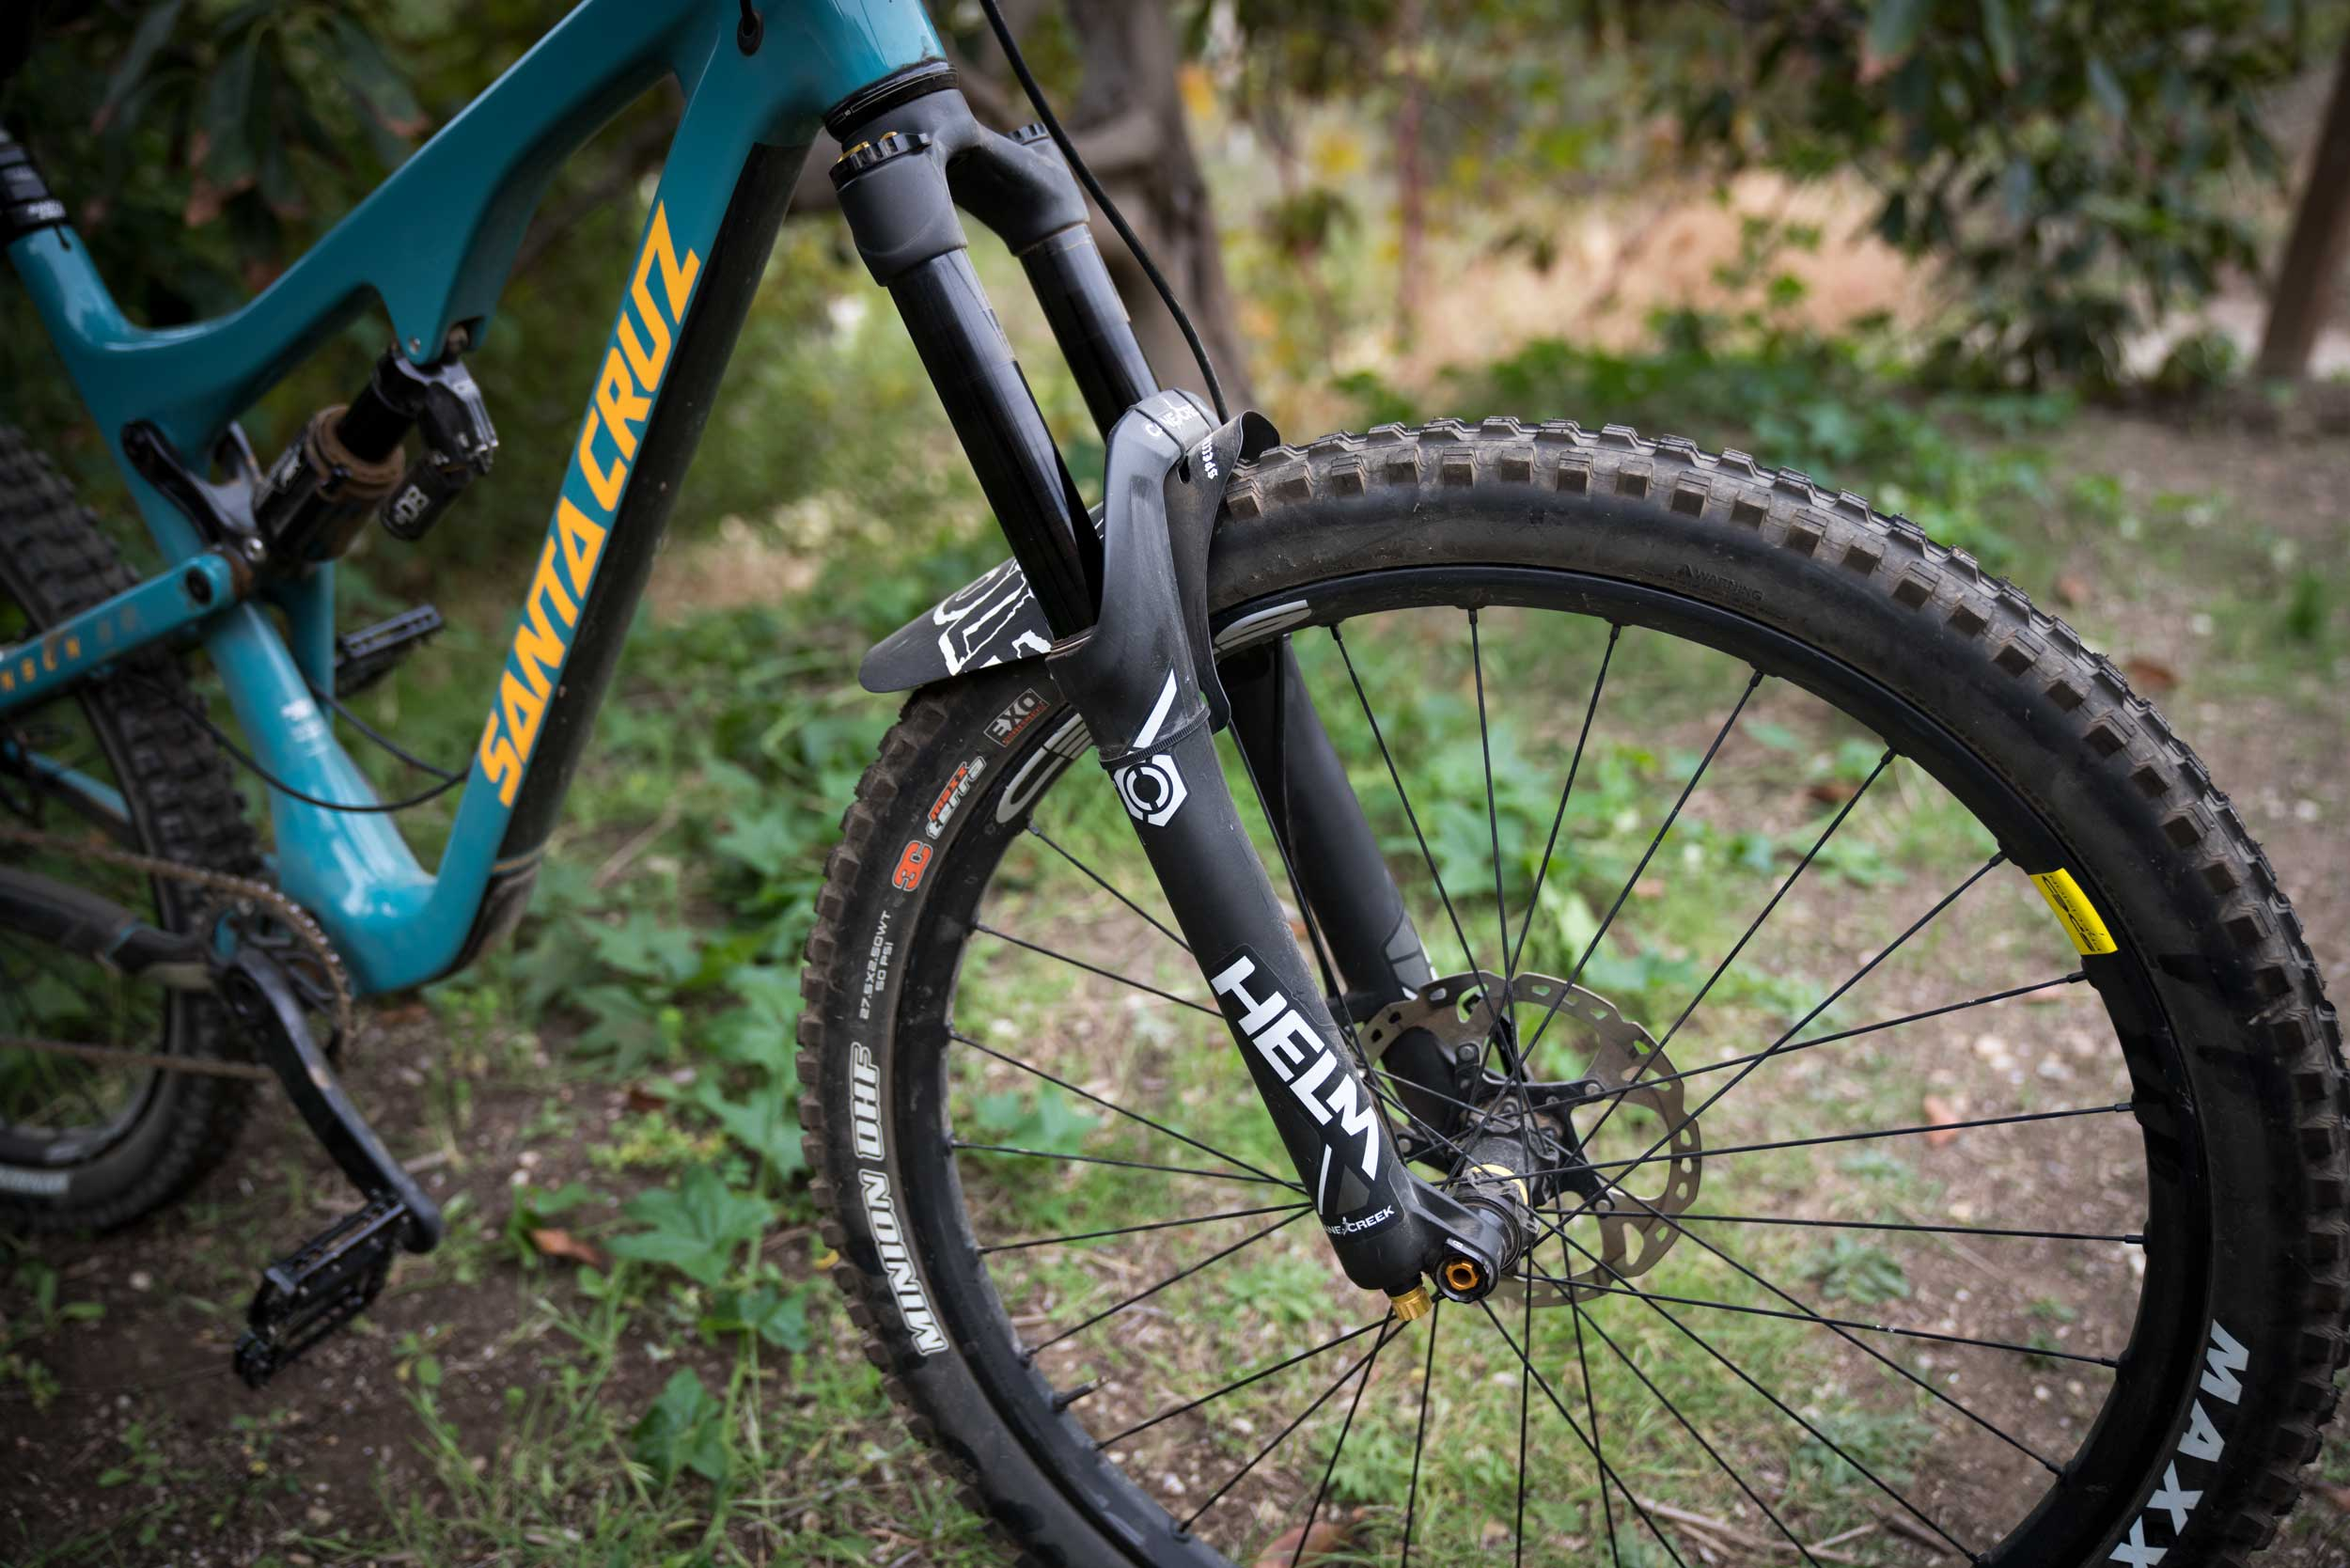 Review: Cane Creek Suspension Upgrade - Helm and DBair CS